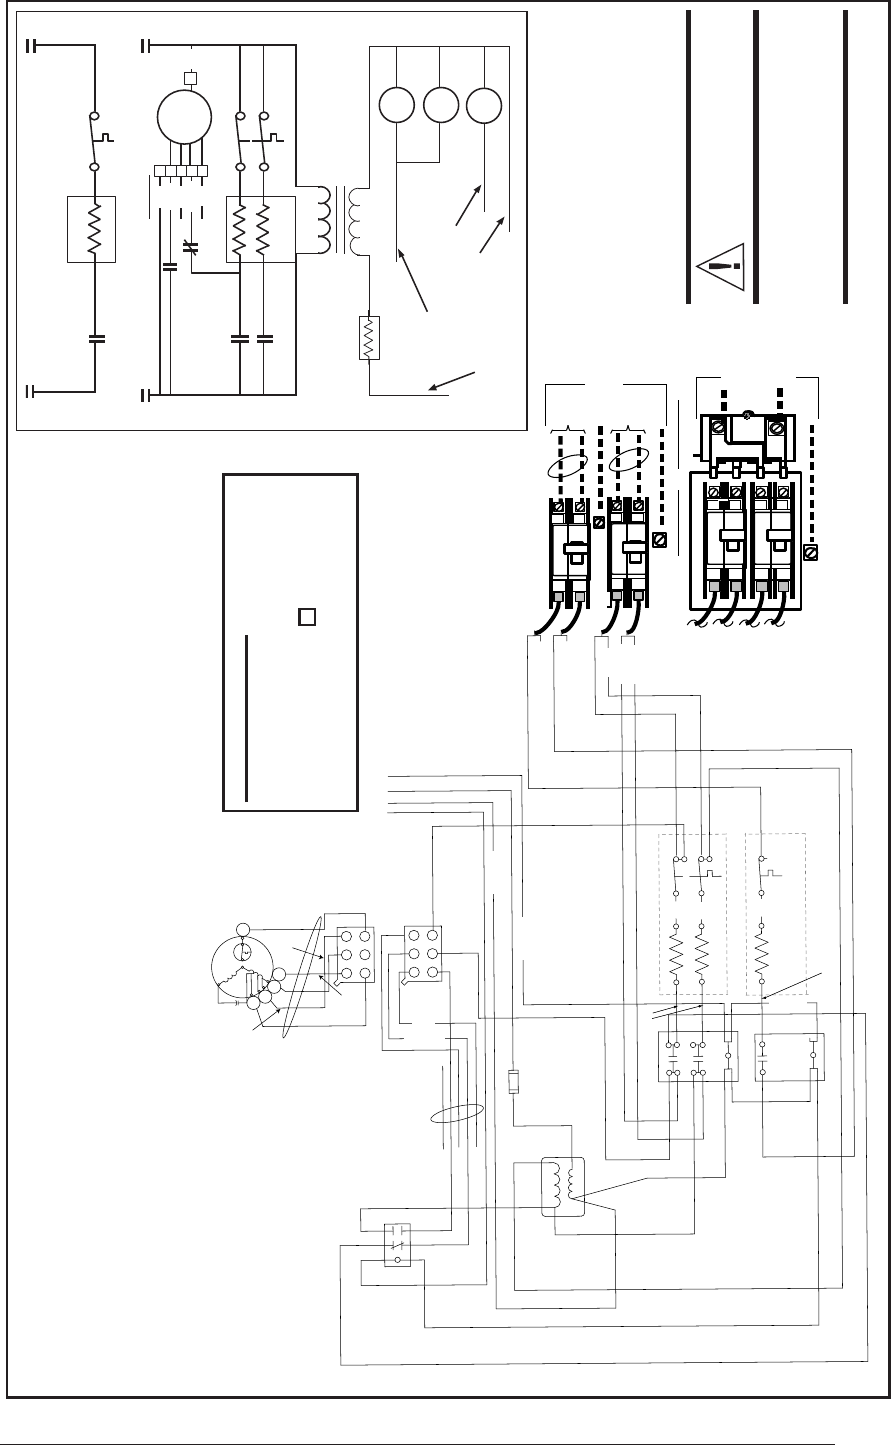 Manufactured Home Wiring Diagrams : manufactured, wiring, diagrams, DIAGRAM], Mobile, Wiring, Diagrams, Version, Quality, PARTDIAGRAMS.VERITAPERALDRO.IT